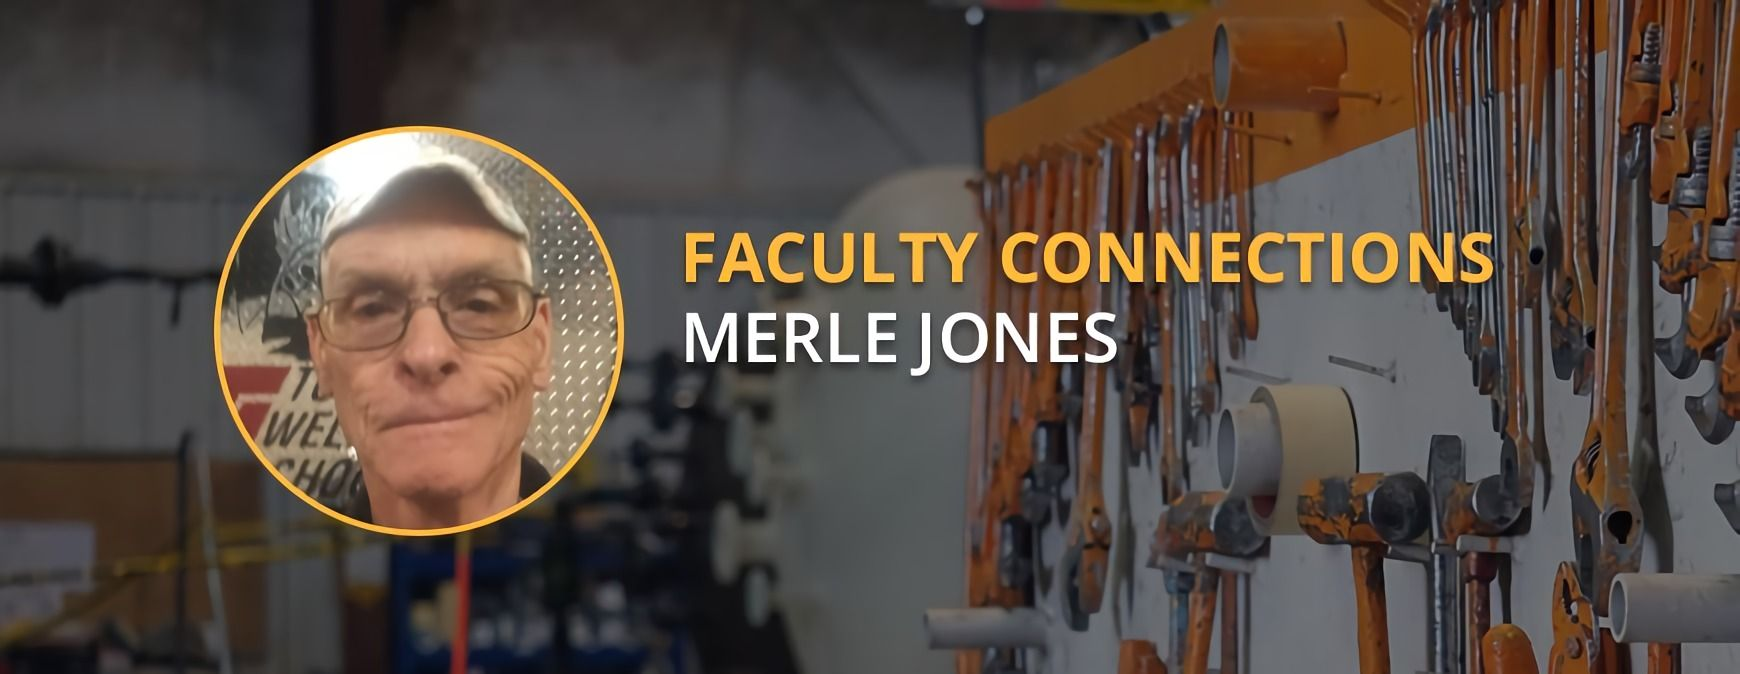 Merle Jones Faculty Connection